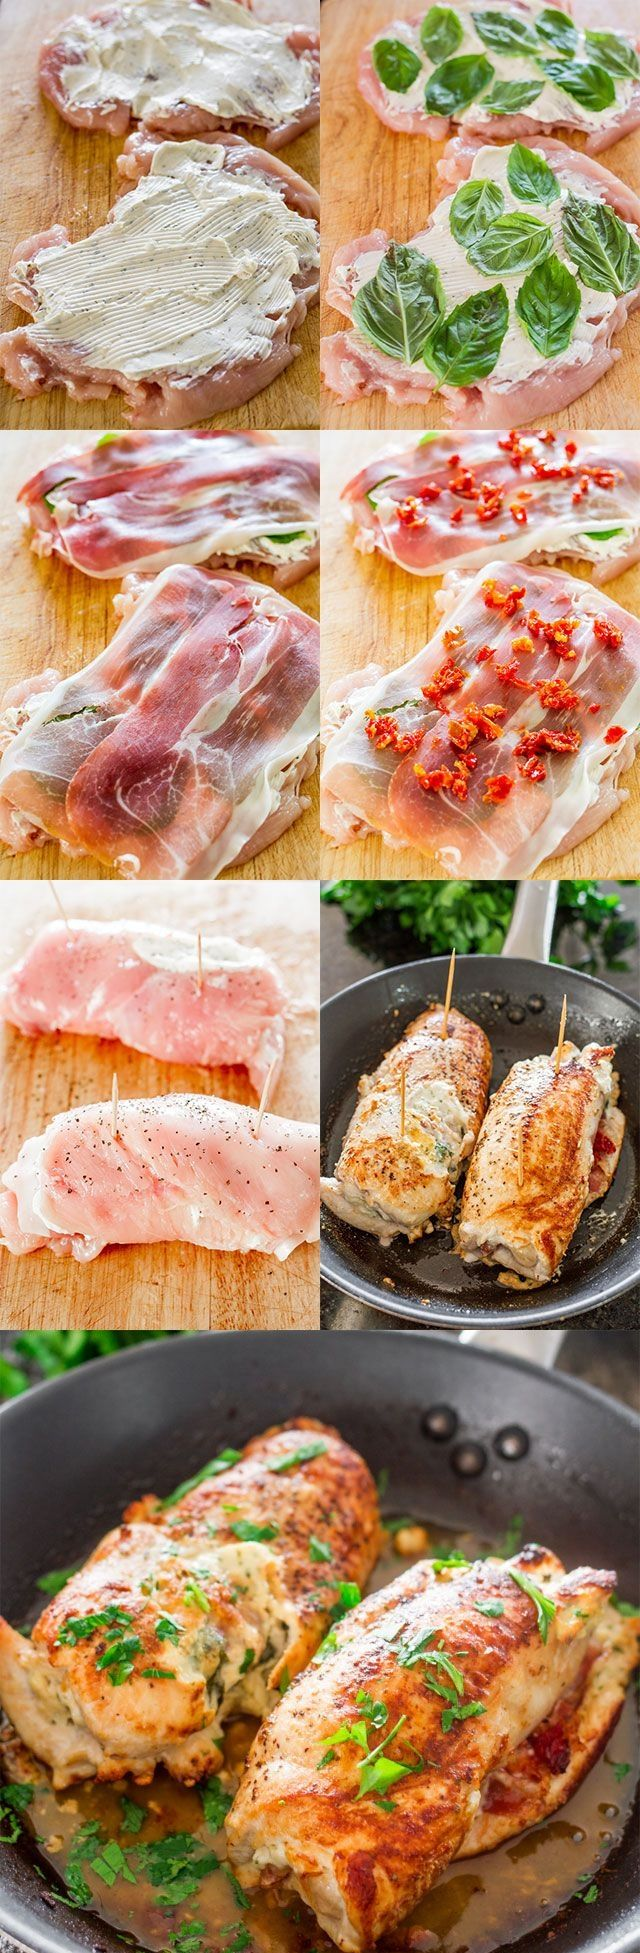 Cheese and Prosciutto Stuffed Chicken Breasts – an impressive dish for a Sunday night dinner or a Holiday. Delicious chicken rolls with a surprise filling.